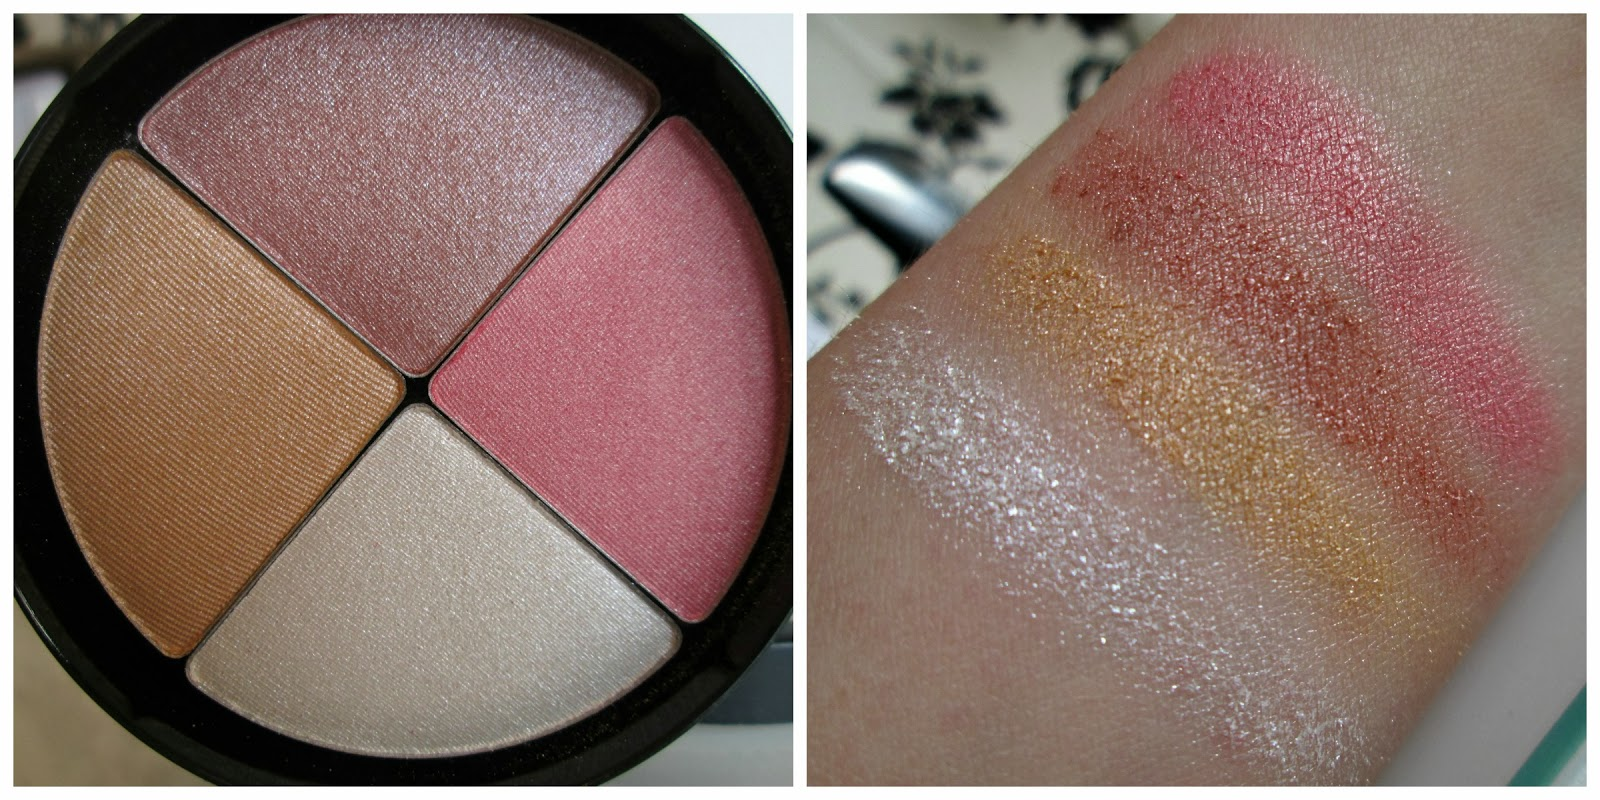 Shimmer Brick - Luster by glo minerals #14